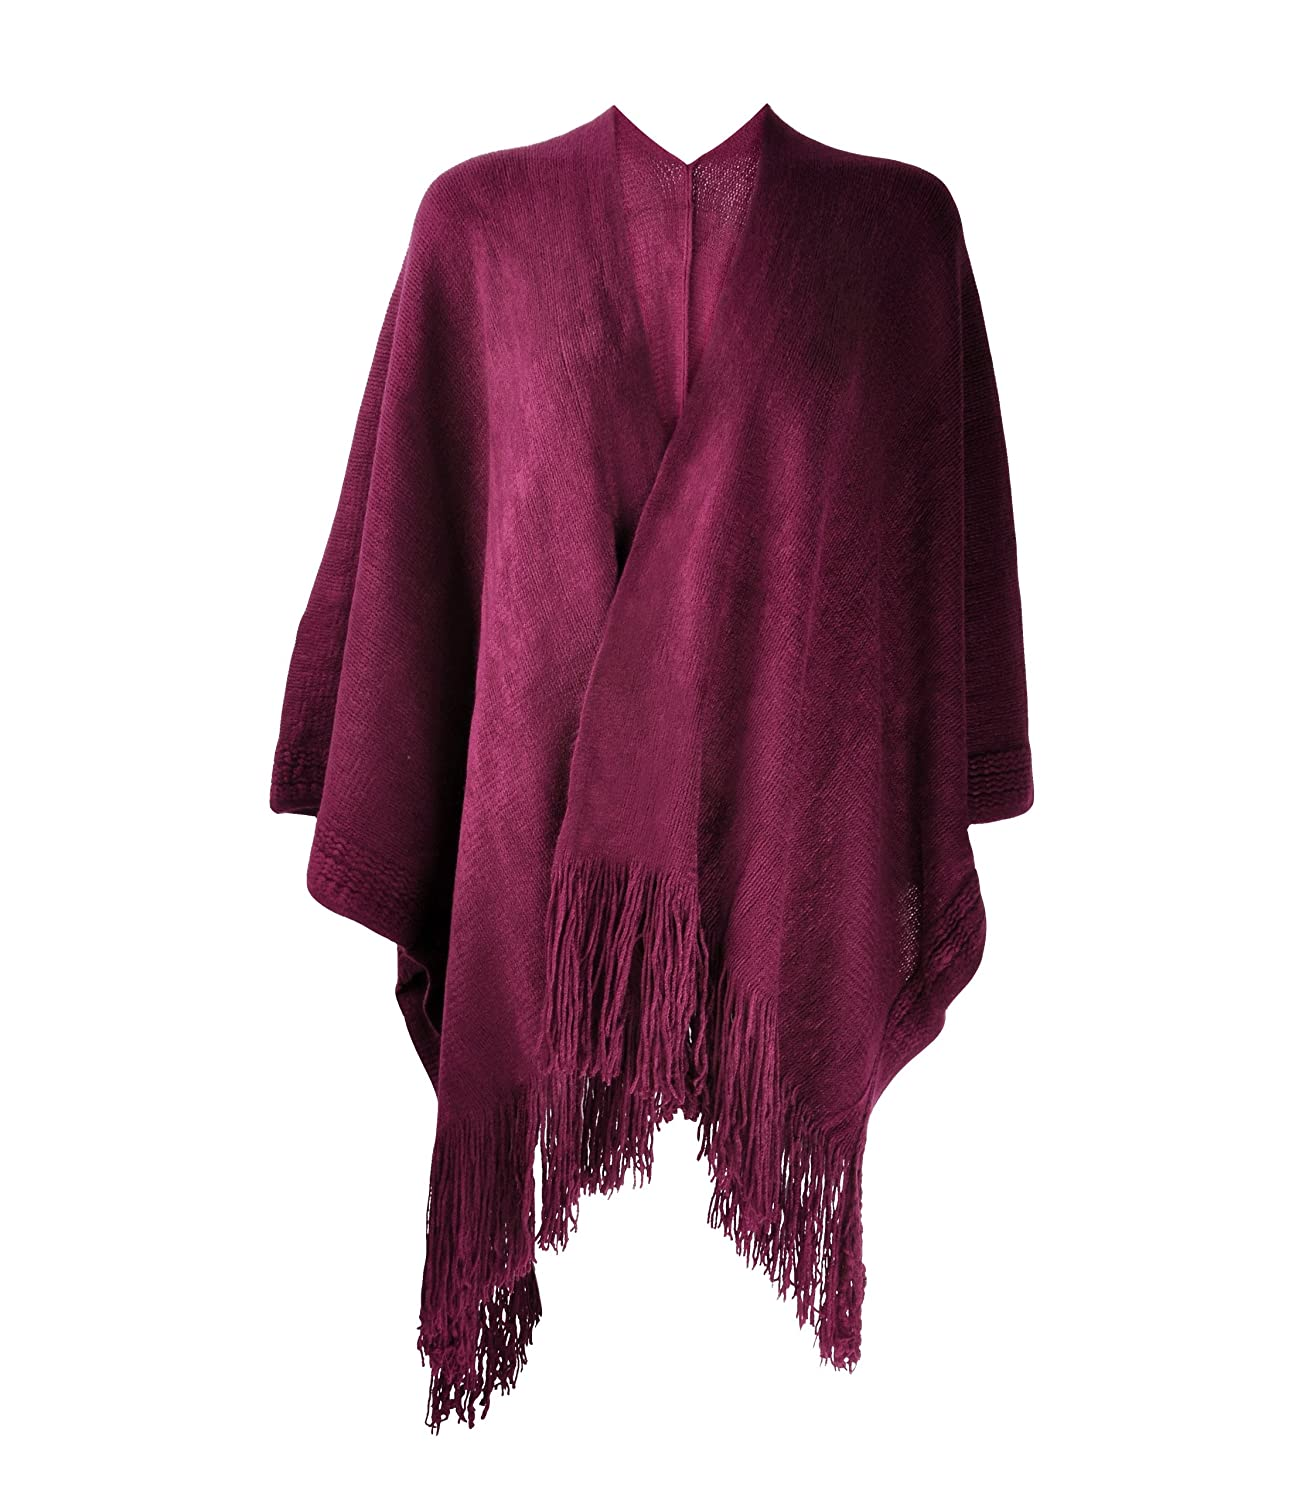 ZLYC Women Lightweight Soft Basic Draped Open Front Blanket Wrap Fringe Poncho Red JC-KW-0063-RD